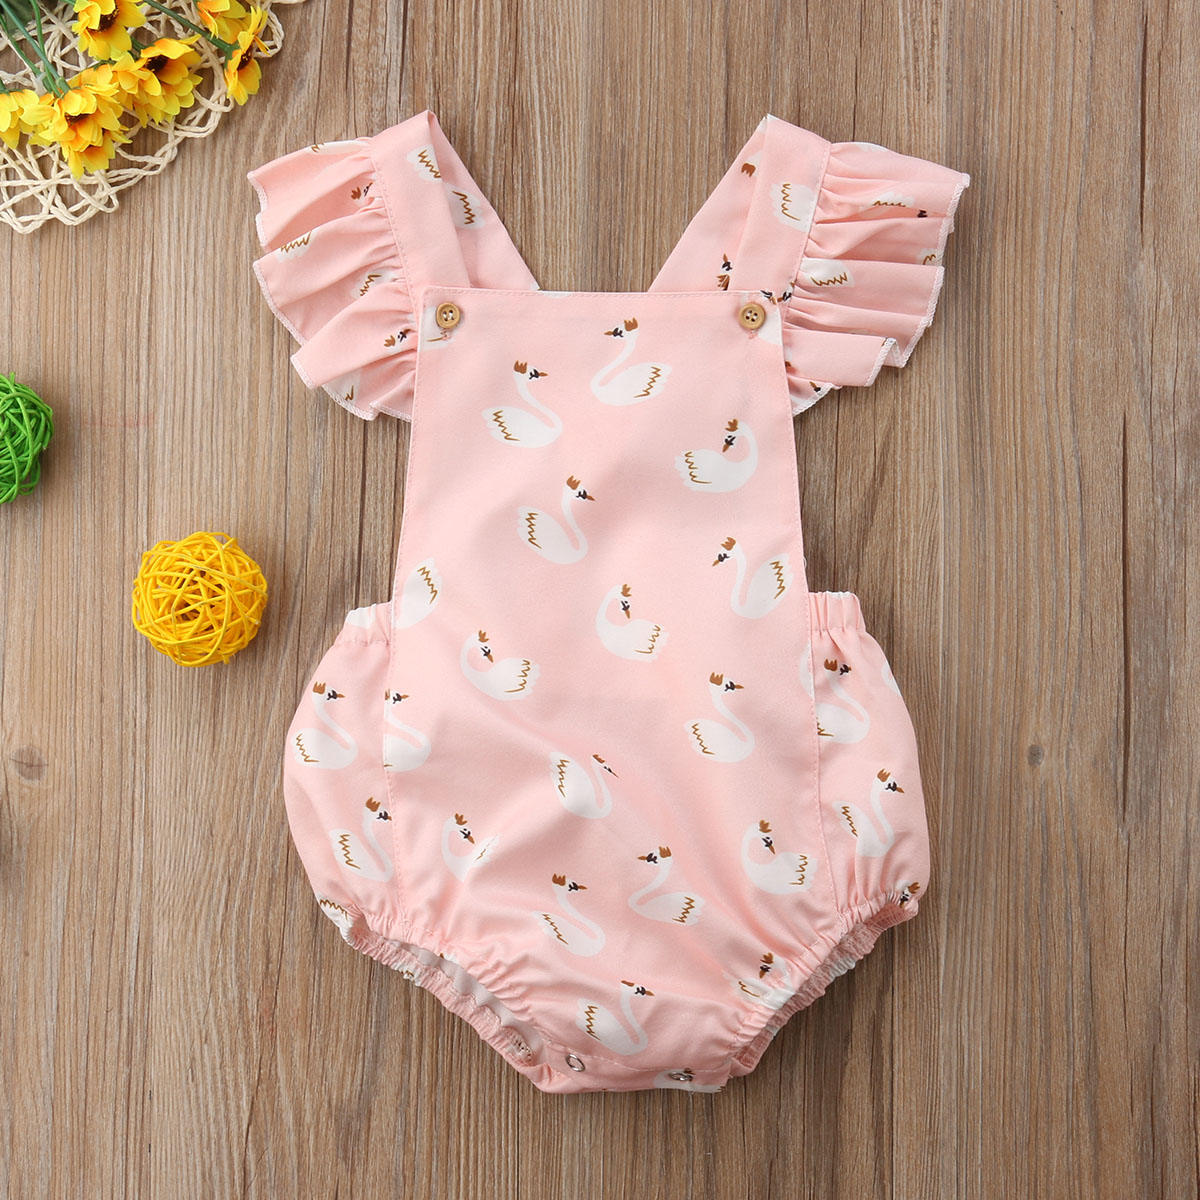 0-3T Cute Swan Ruffle Bodysuit For Newborn Baby Girl Outfit Clothes Summer